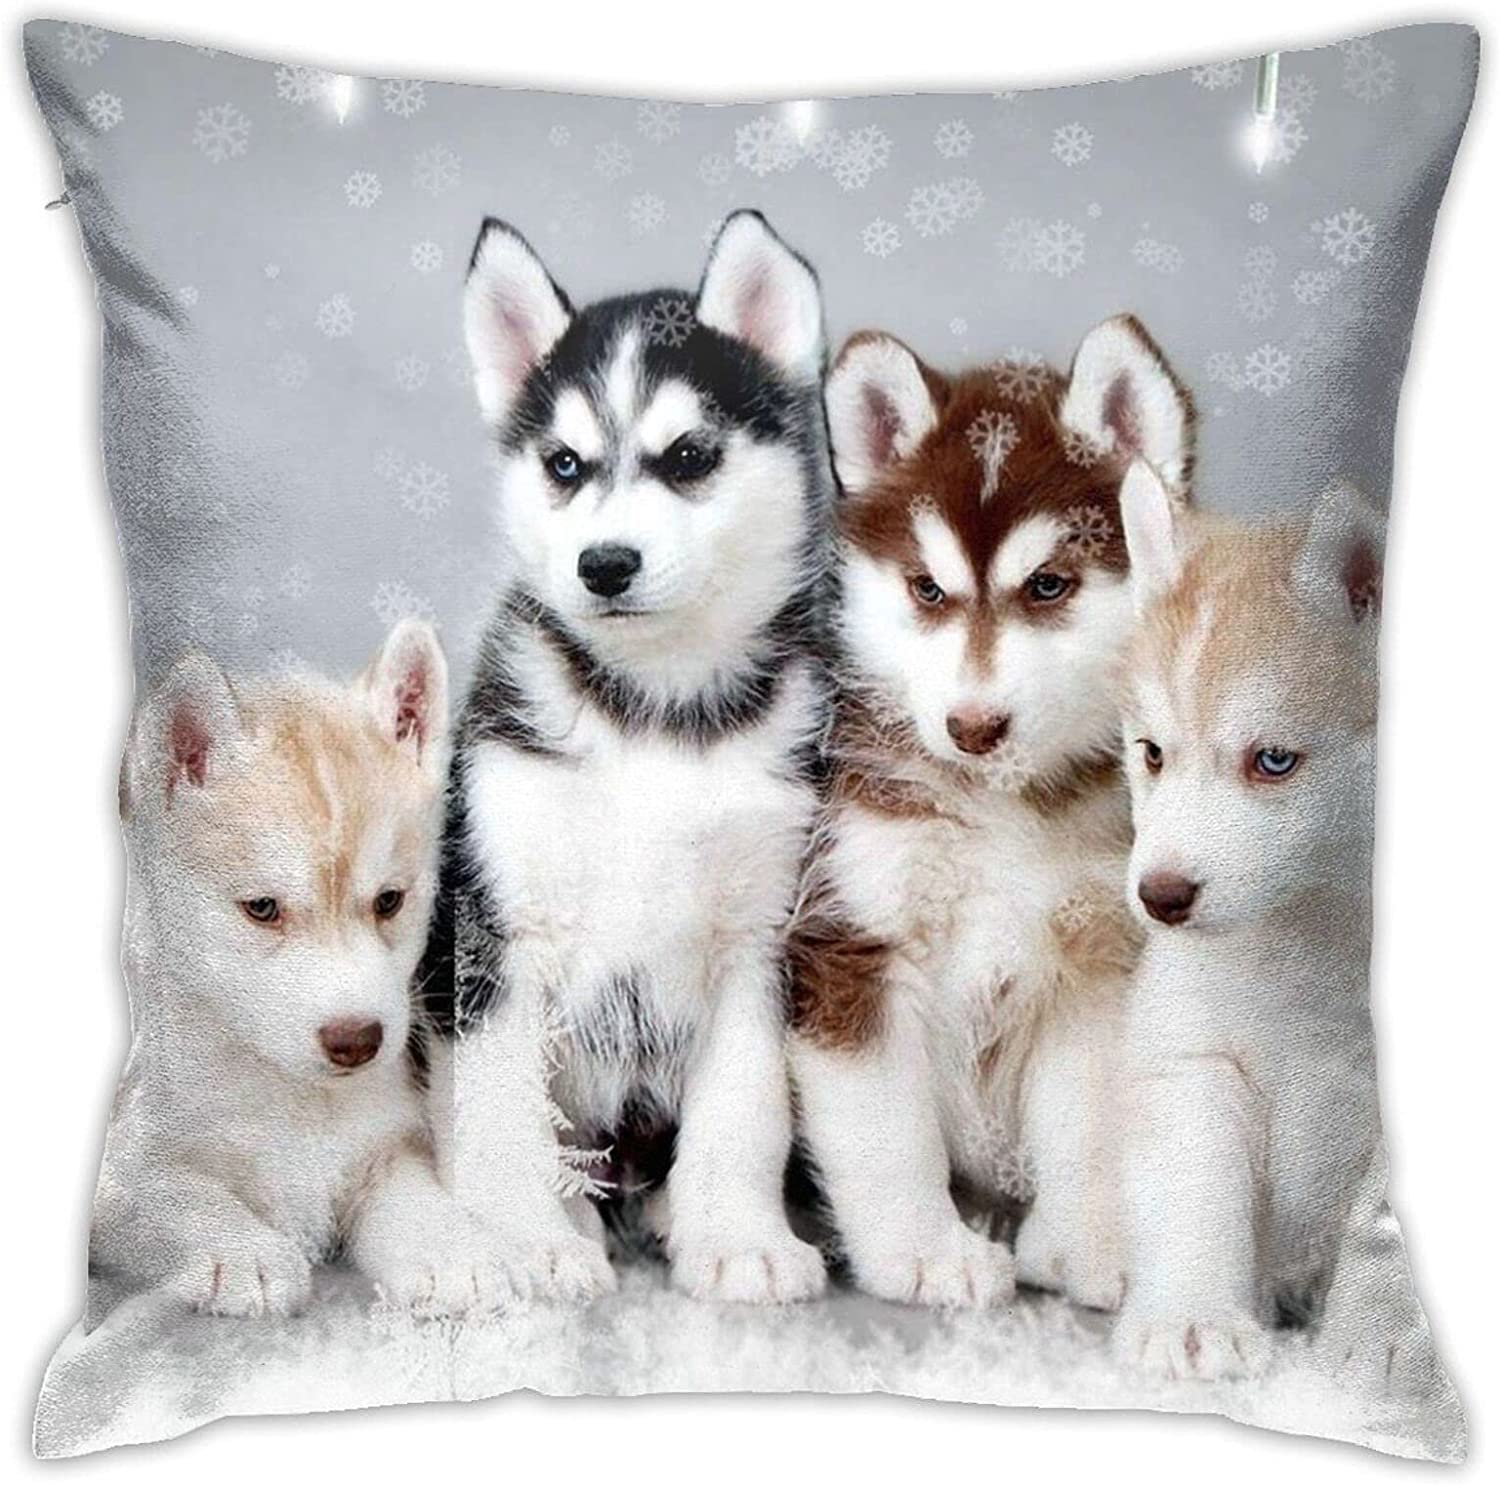 Husky Puppy 18 X Inches Cute Couch Ind Bed and Max 73% OFF Pillows 5 ☆ very popular Design